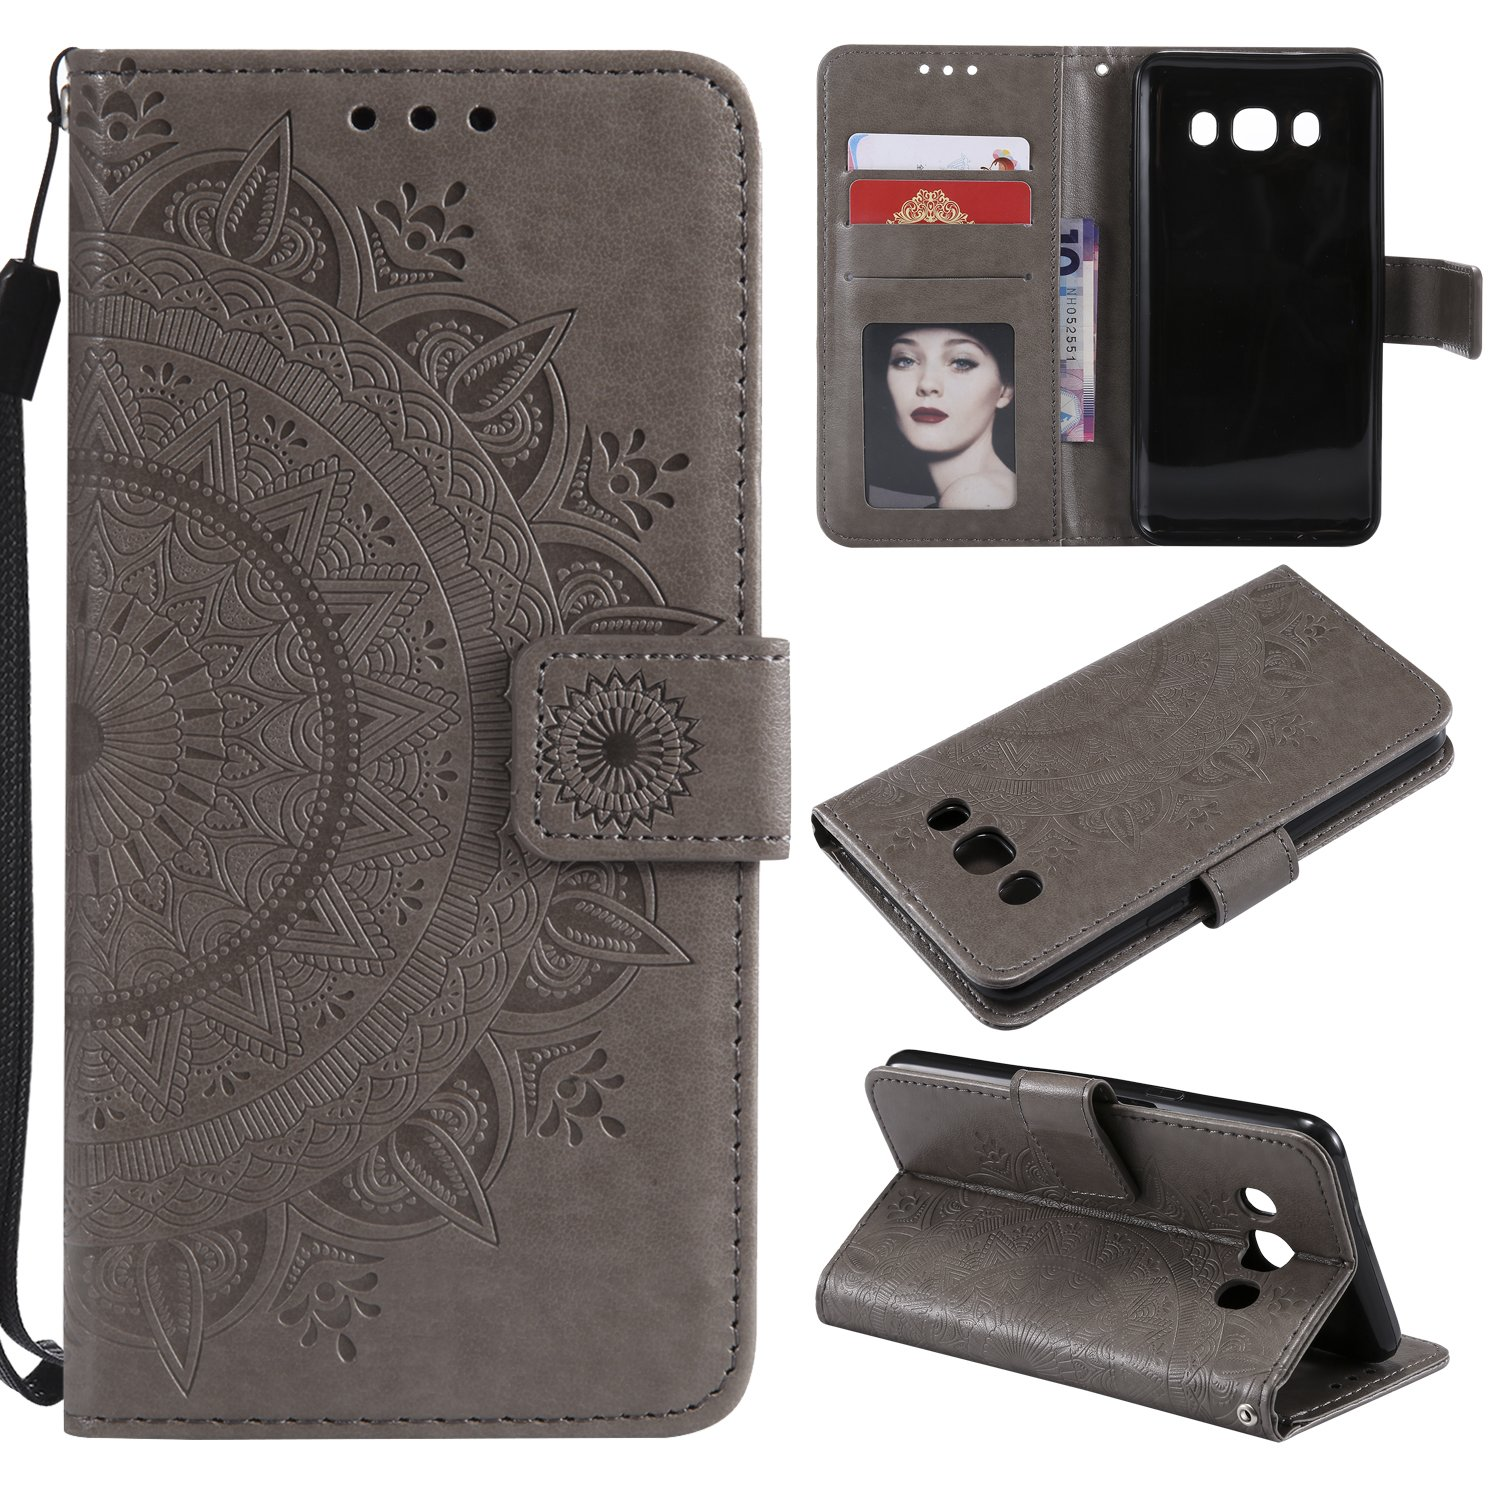 Galaxy J7 2016 Floral Wallet Case,Galaxy J7 2016 Strap Flip Case,Leecase Embossed Totem Flower Design Pu Leather Bookstyle Stand Flip Case for Samsung Galaxy J7 2016-Grey